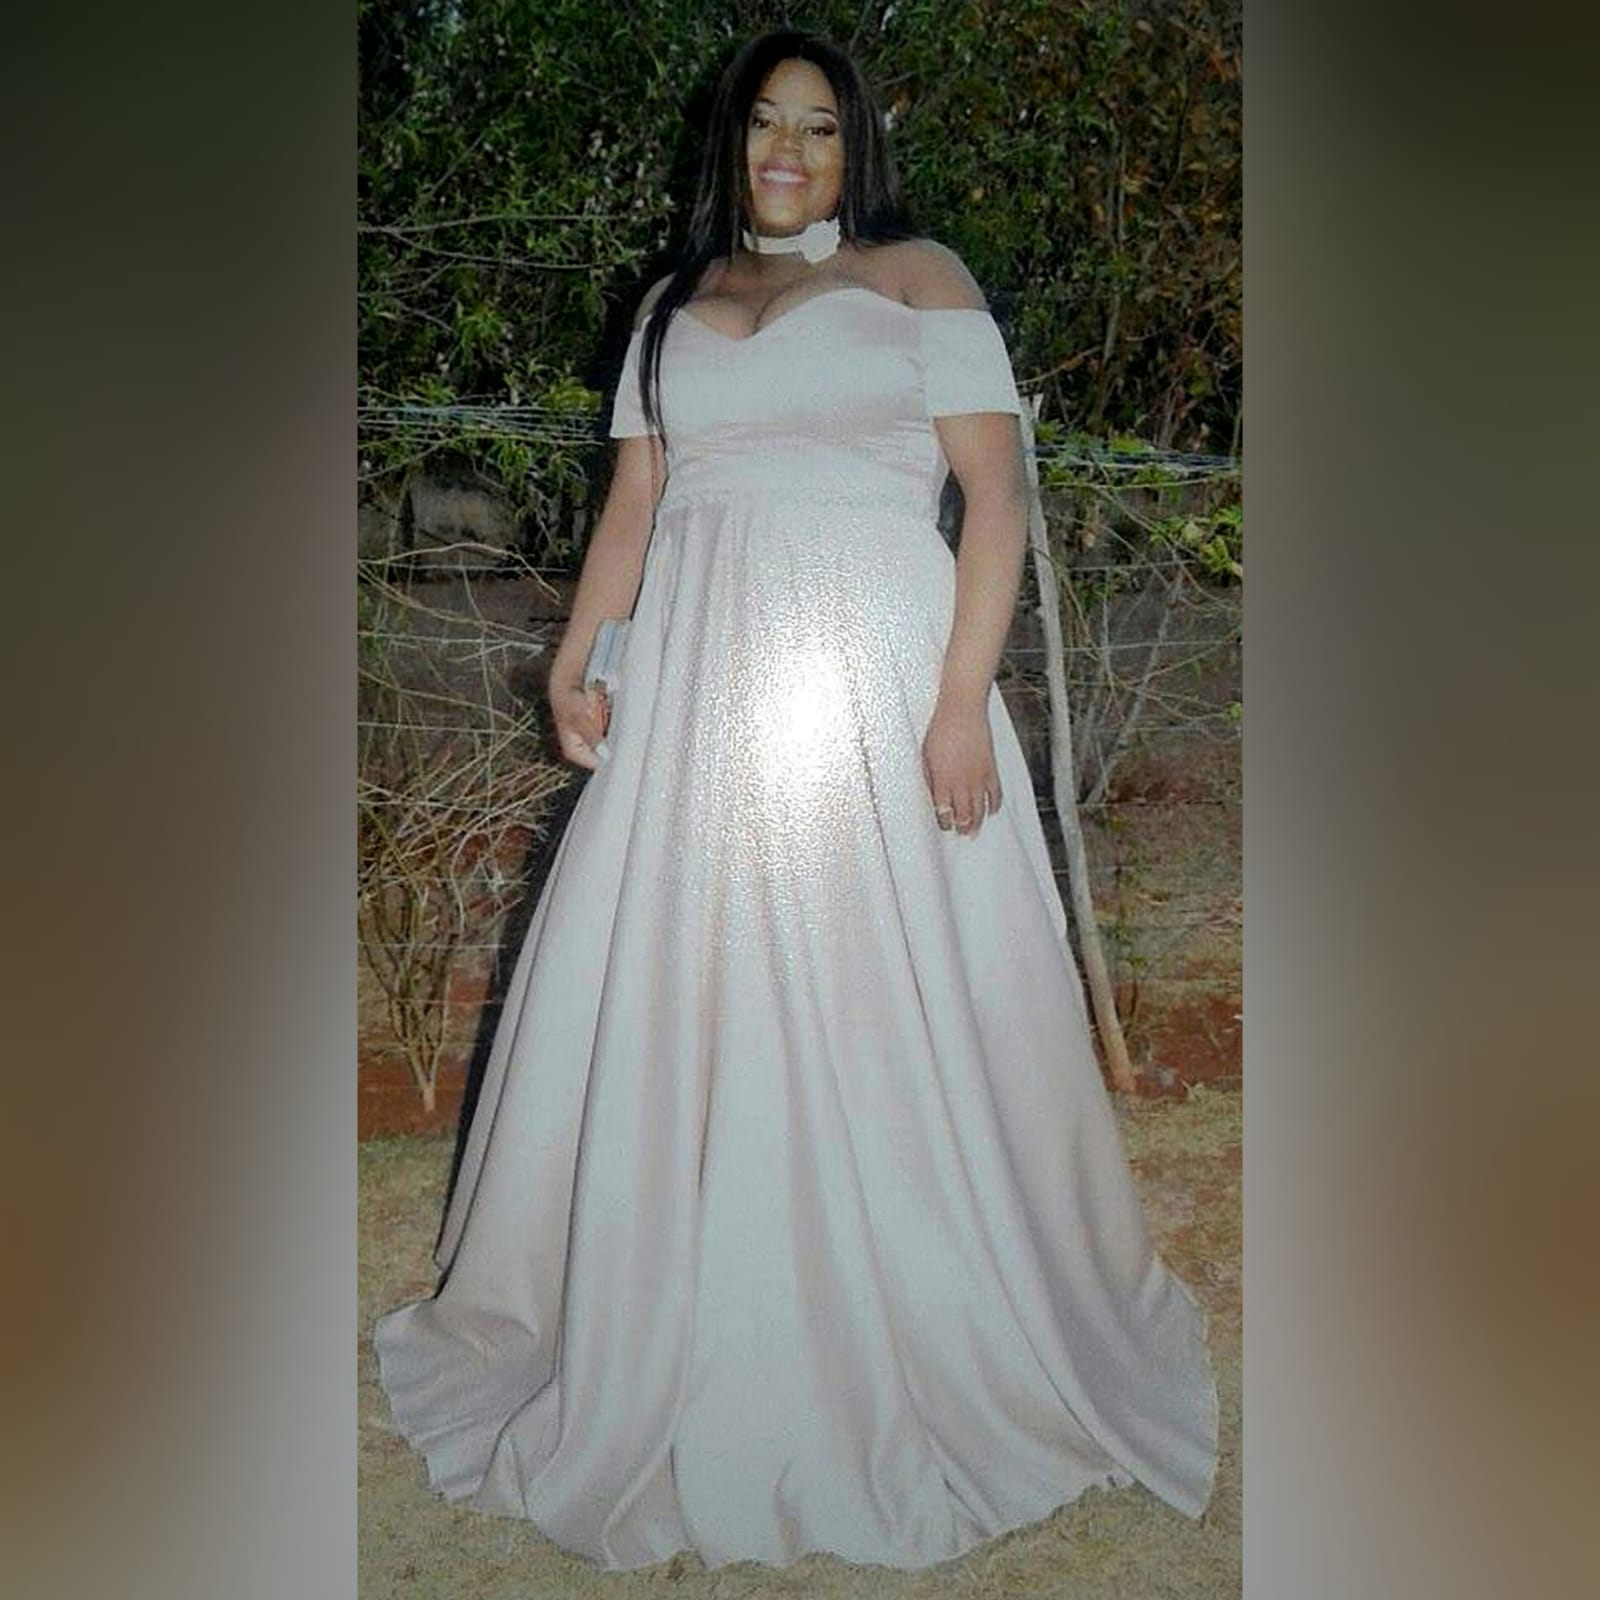 Pale pink satin plus size ceremony dress 5 pale pink satin plus size ceremony dress. Off shoulder, with a sweetheart neckline and off shoulder short sleeves. With a beaded waistline belt effect.